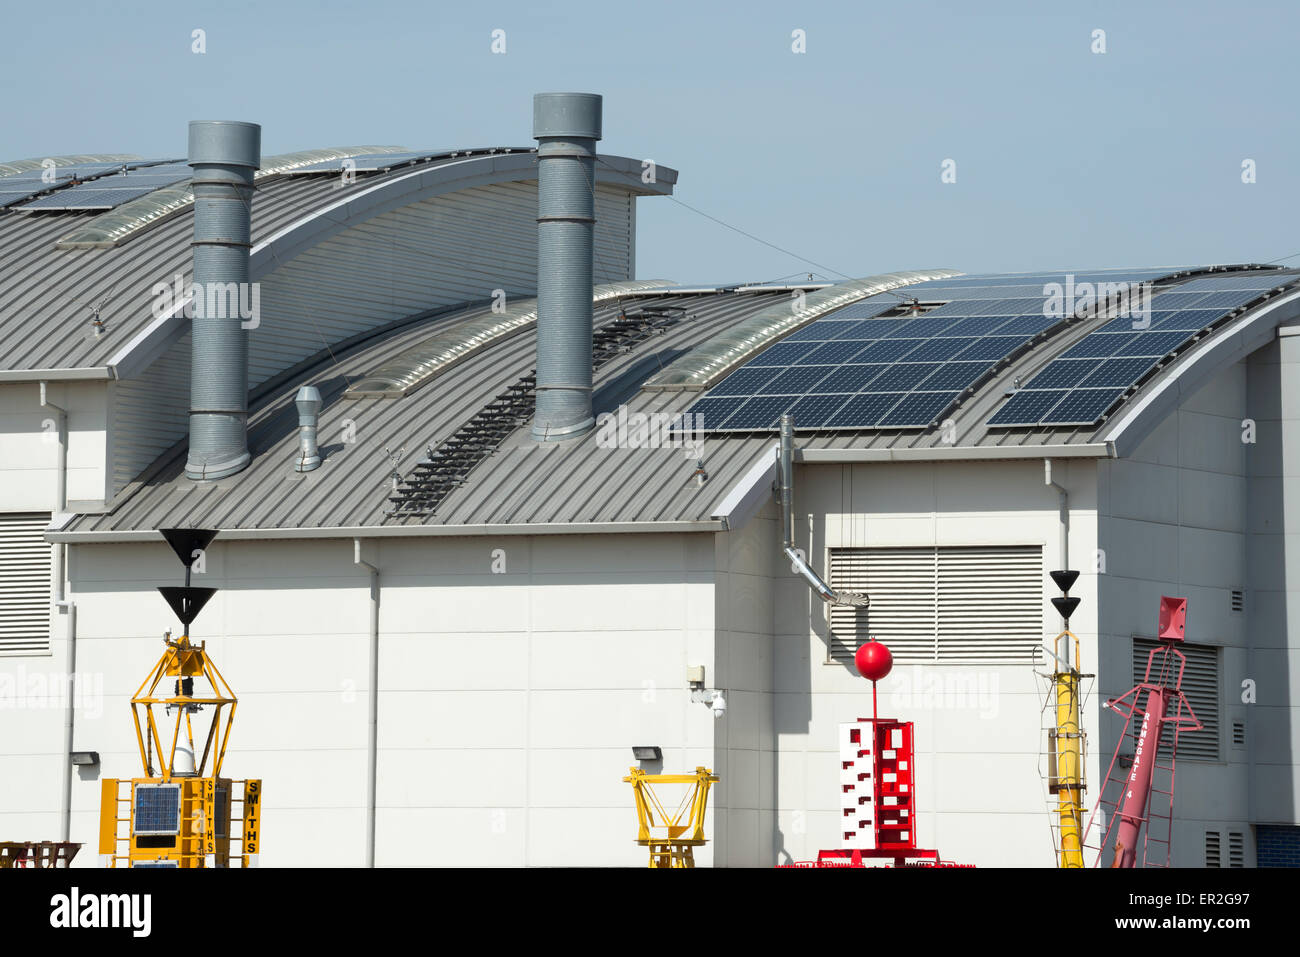 Trinity House warehouse with solar panels fitted to the roof, Harwich, Essex, UK. - Stock Image